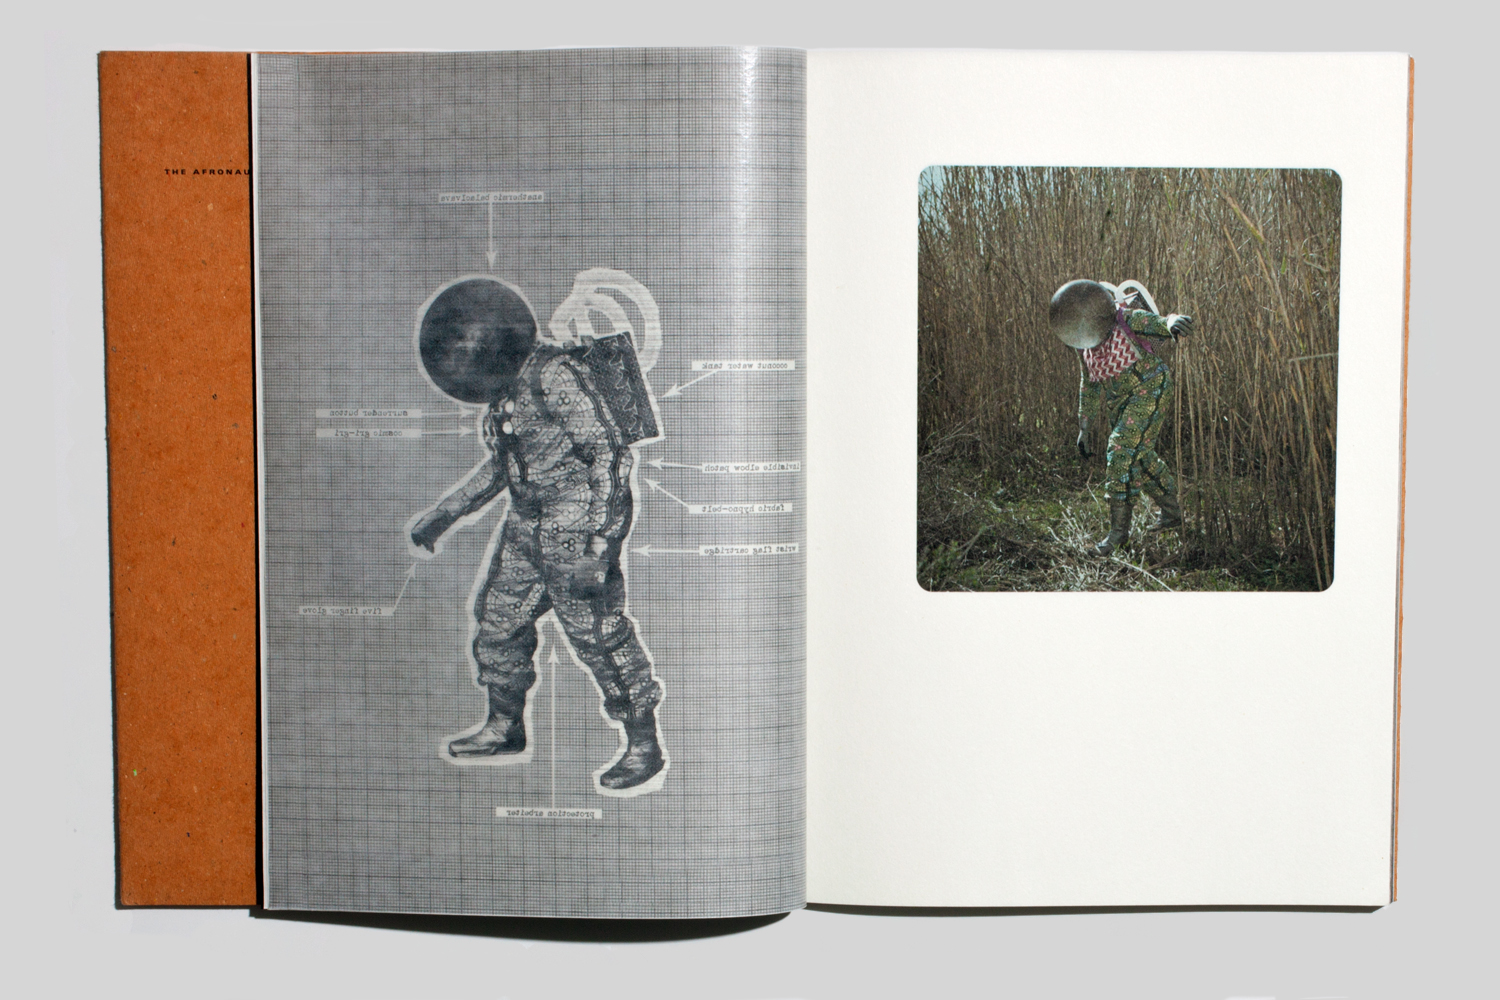 A re-imagined reportage on the Zambian Space Program project, it tells the fascinating story of an impossible project in a visually smart and beautiful way. The book itself, edited with Laia Abril and designed with Ramon Pez, is a real gem. Photographs are accompanied by documents, letters, collages and drawings: every detail sheds a new light on the adventure, while at the same time things are not really what they look like. This book also says a lot about documentary reportage, fiction, hipstamatic, story-telling and visual literacy. Lucky are those who managed to get their hands on a copy of the very small first edition.                                                                —Elisa Medde, Managing Editor of Foam